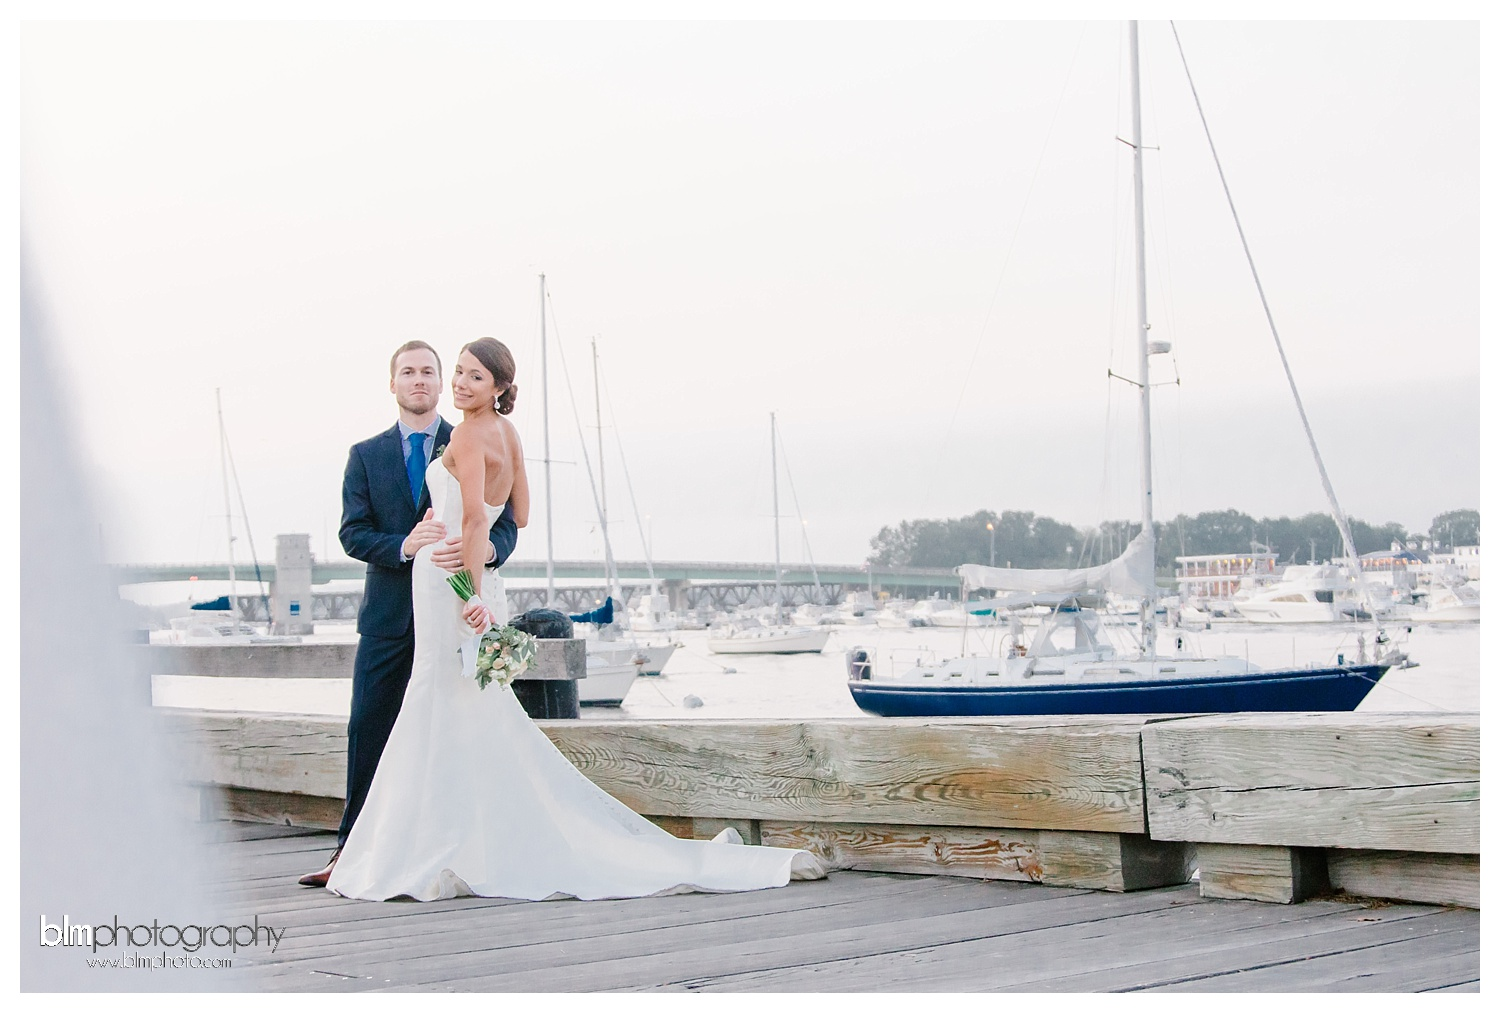 310Nathalie & Kirwan Married at The Maritime Museum_20170916_2843A.jpg